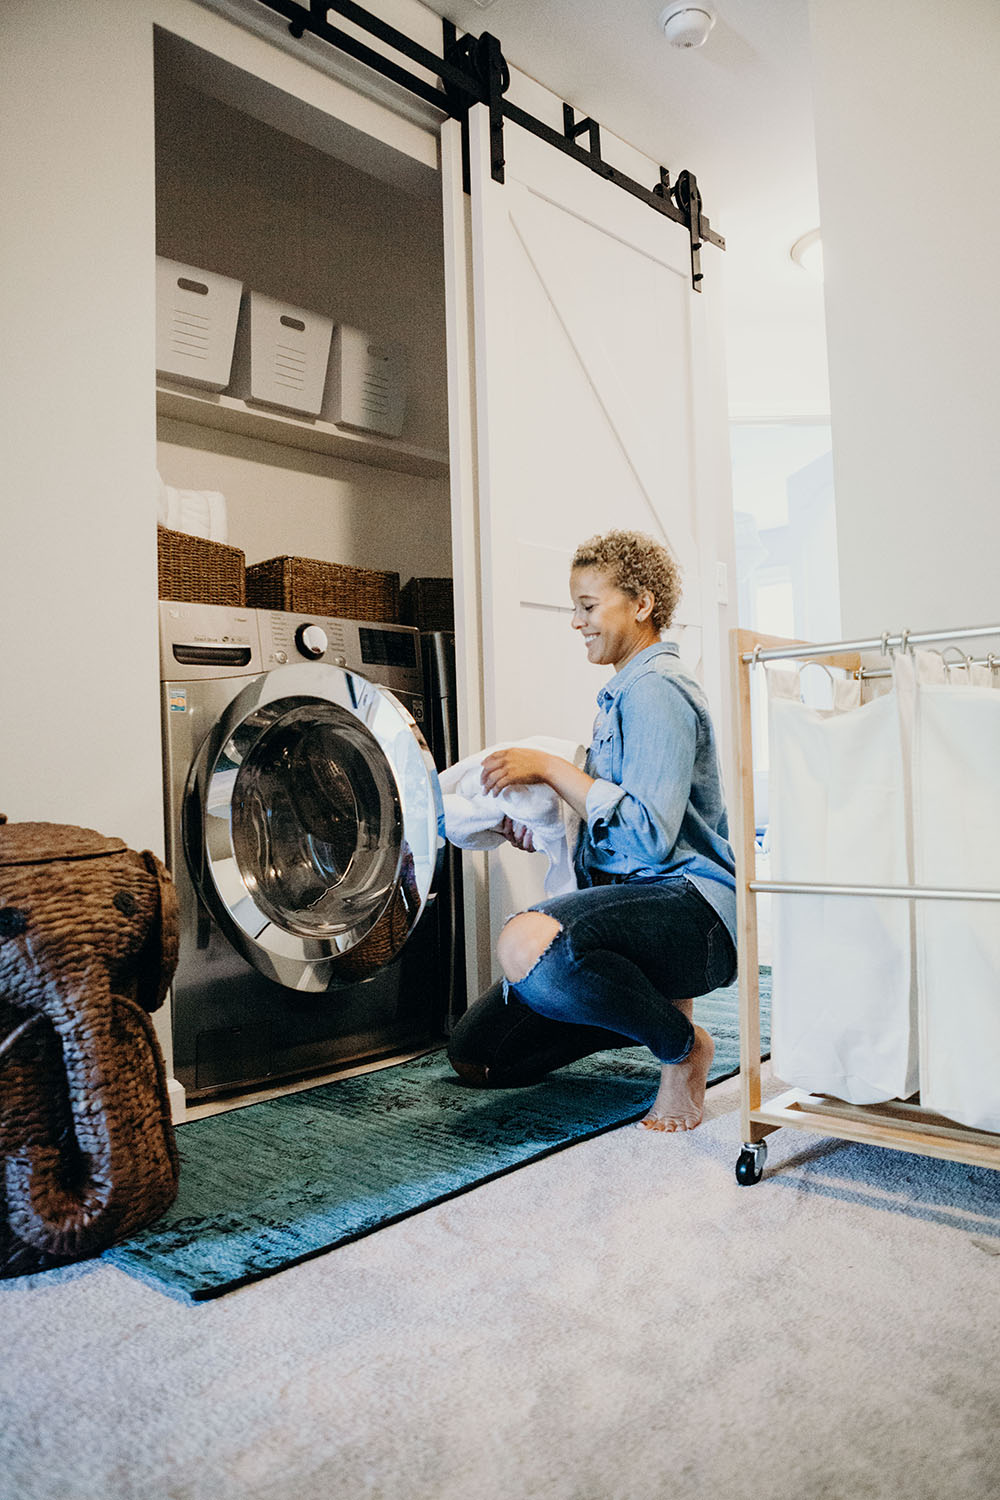 A woman kneeling to add clothes inside a front load washing machine.